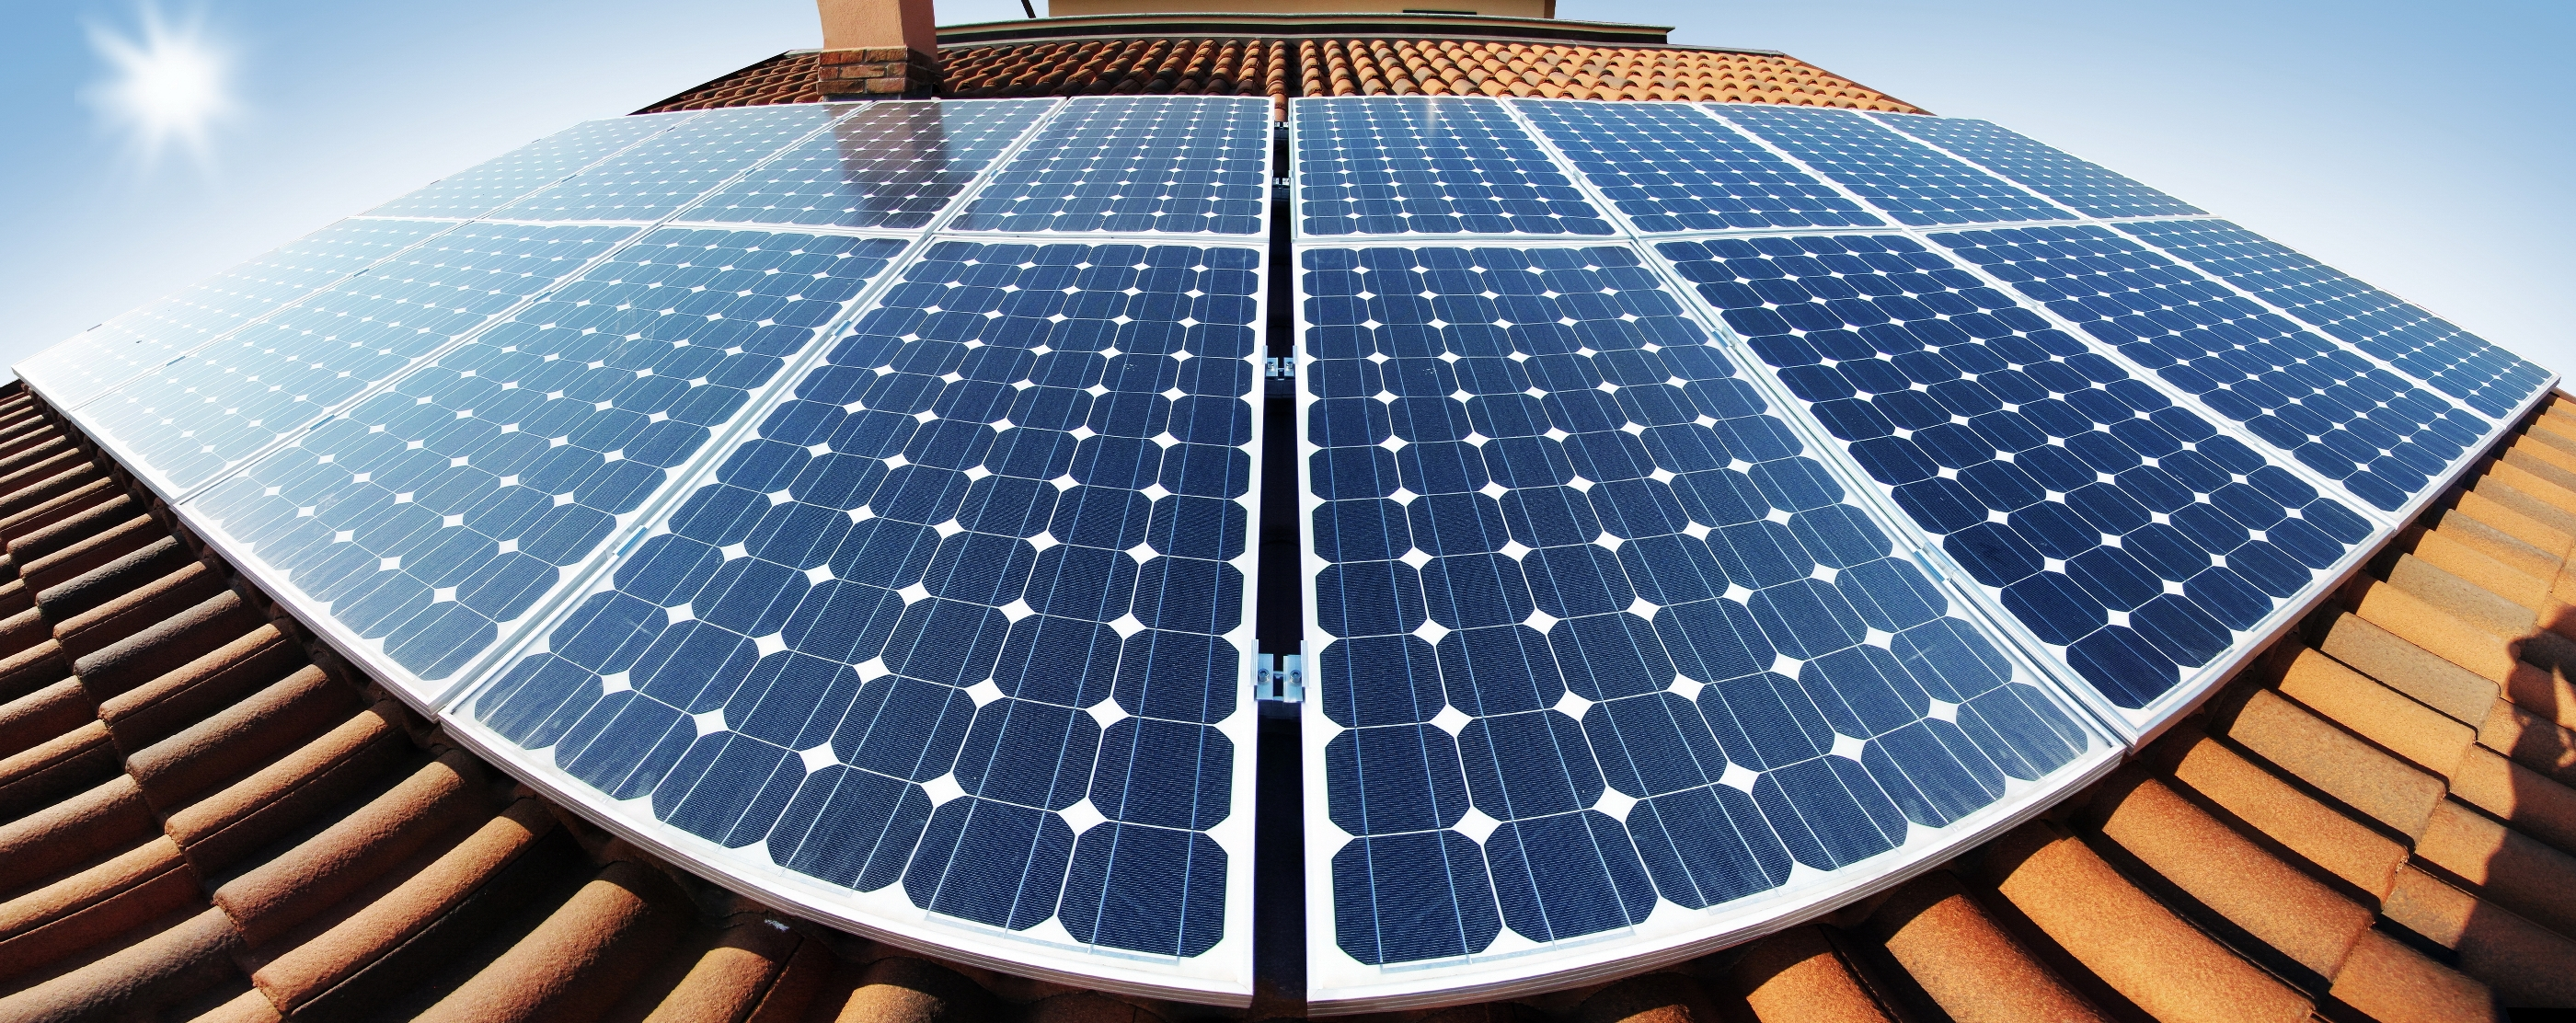 A Loan Worth 100 Million Will Finance Large Solar Rooftop